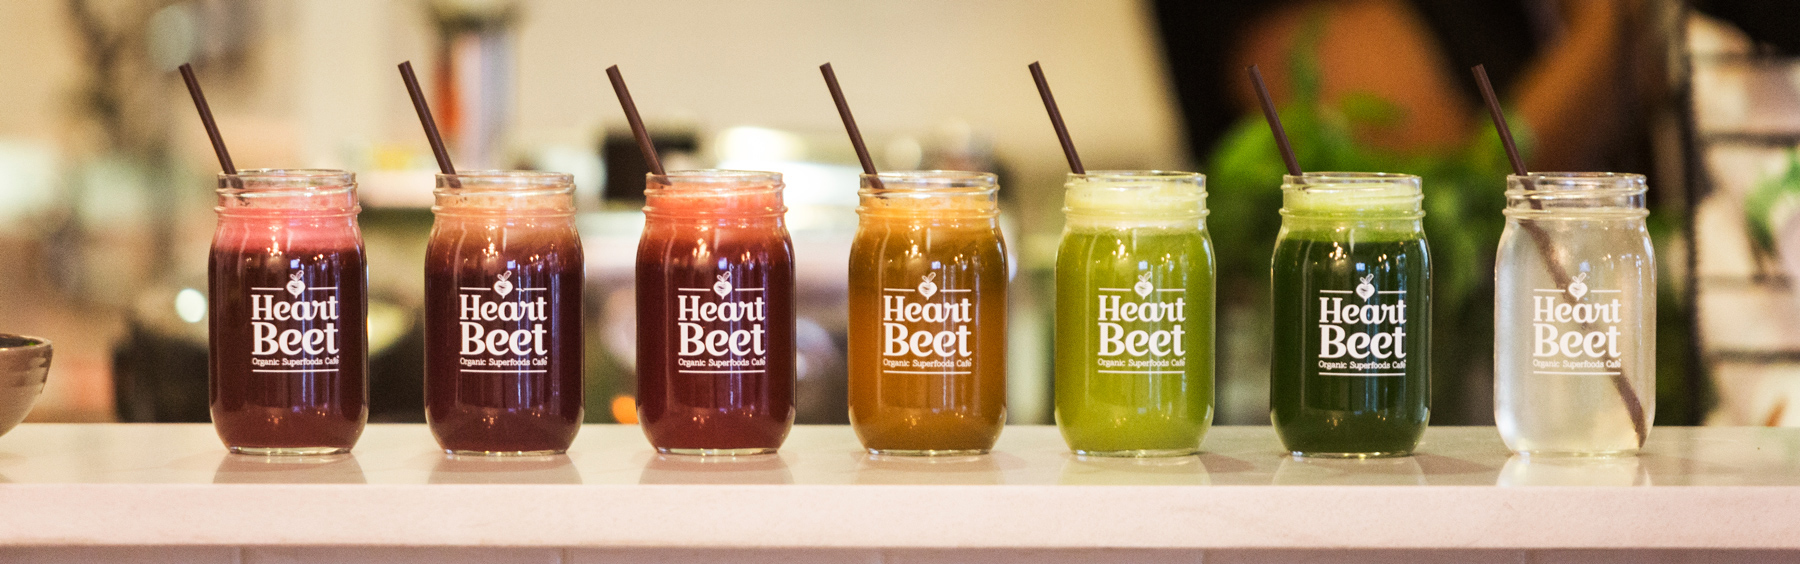 Heartbeet Photography Juice